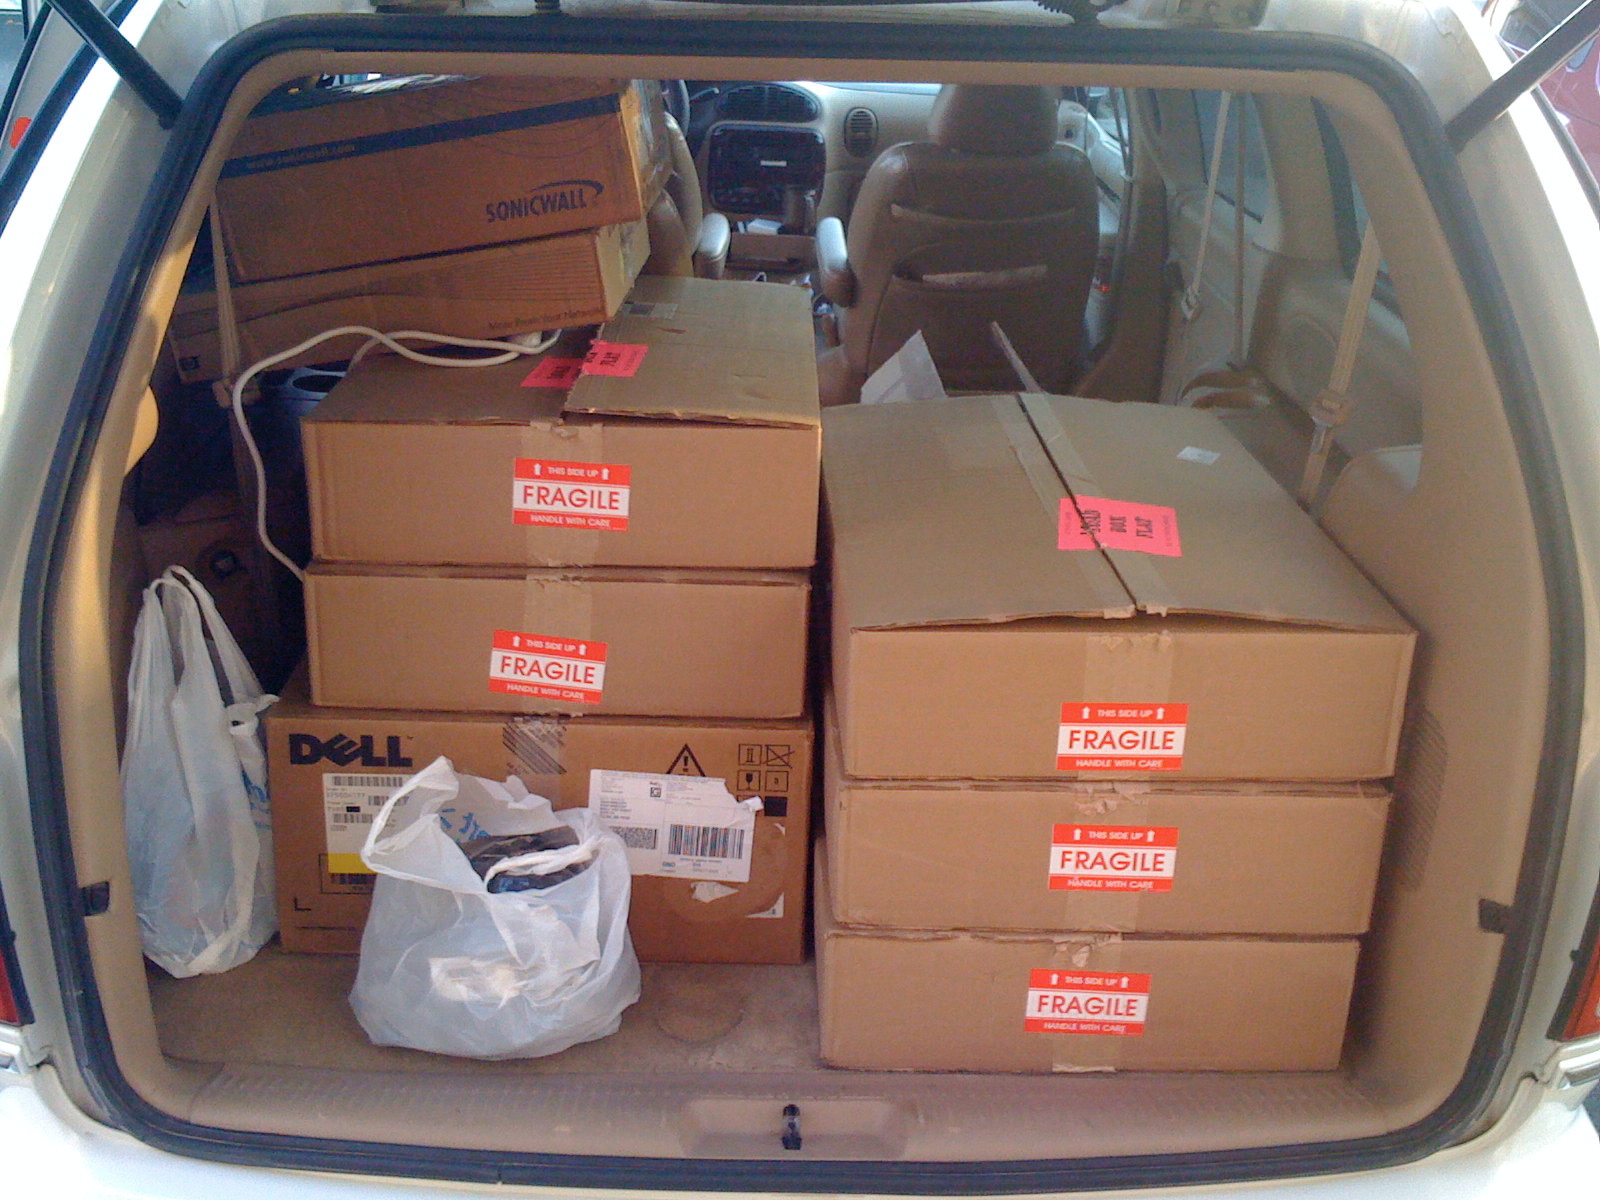 Here's a photo of Twitpic servers in back of his parent's van